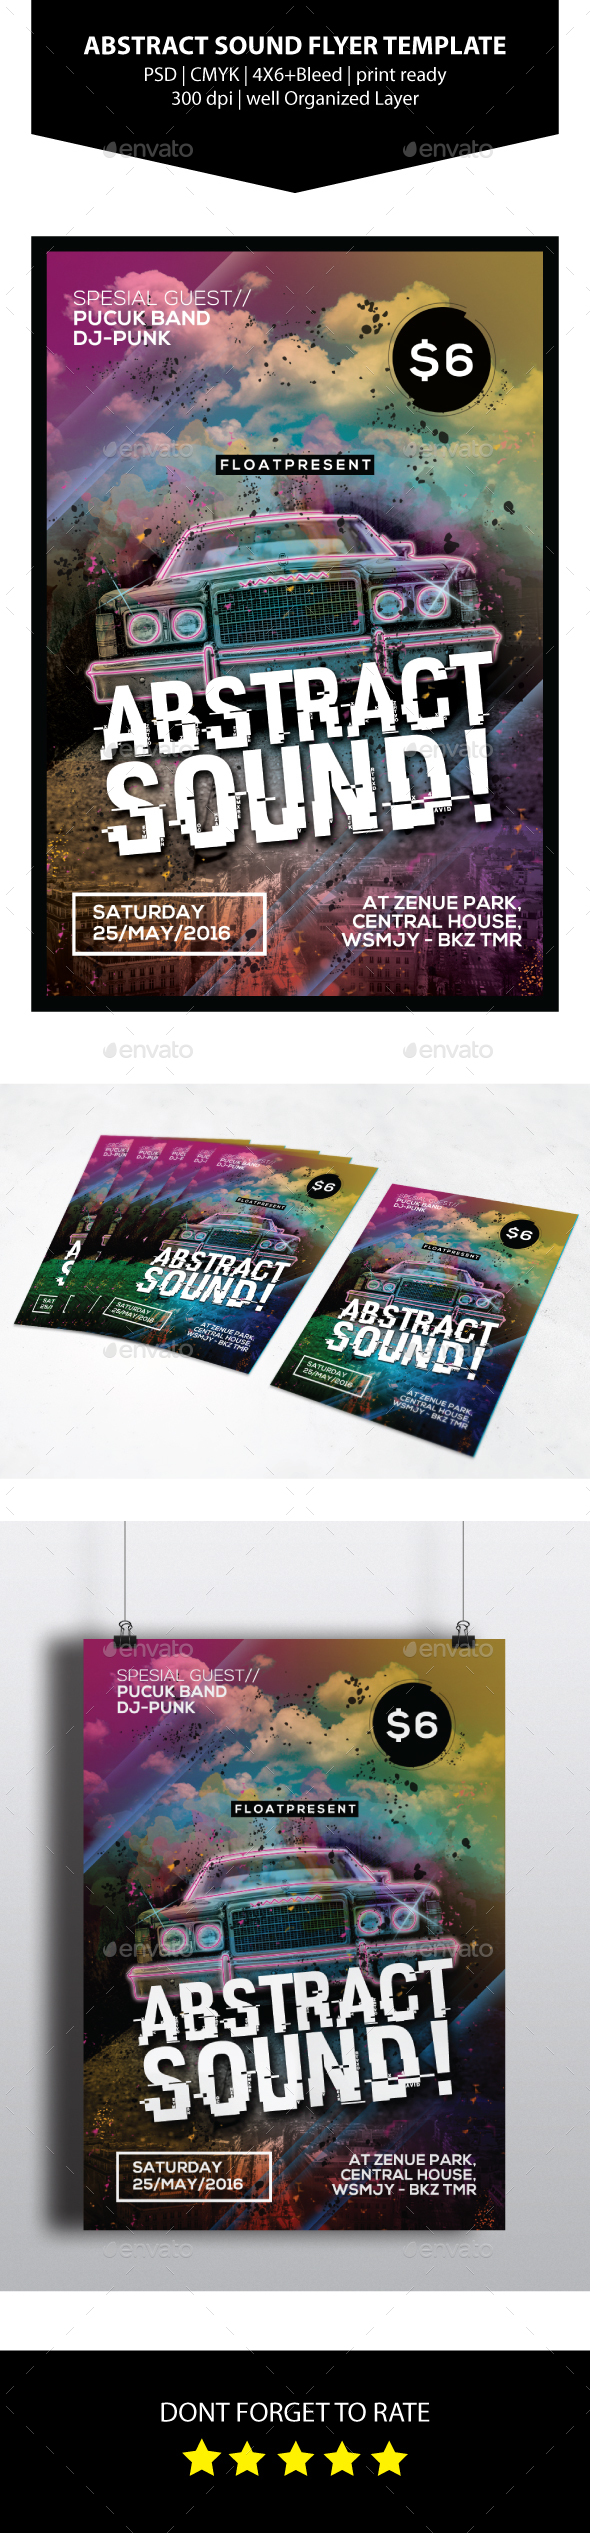 Abstract Sound Flyer Template